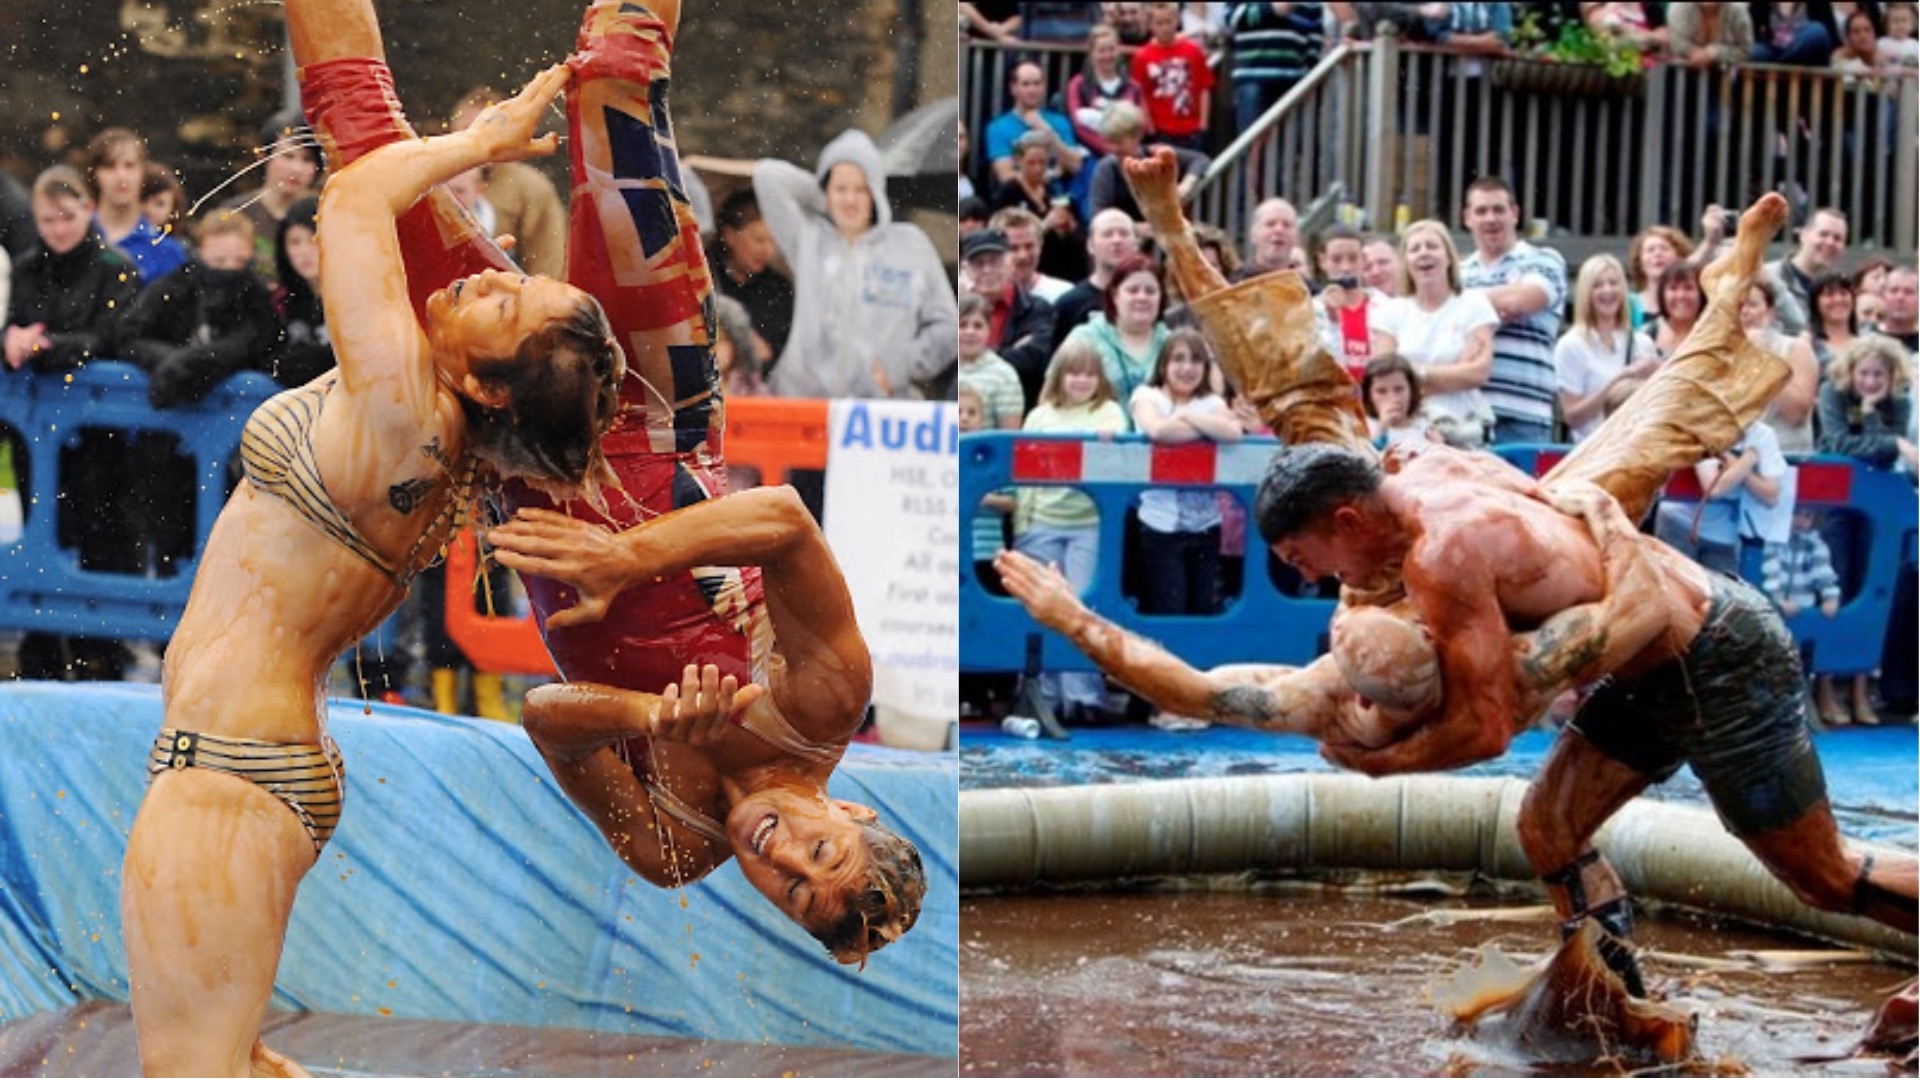 The World Gravy Wrestling Championship.